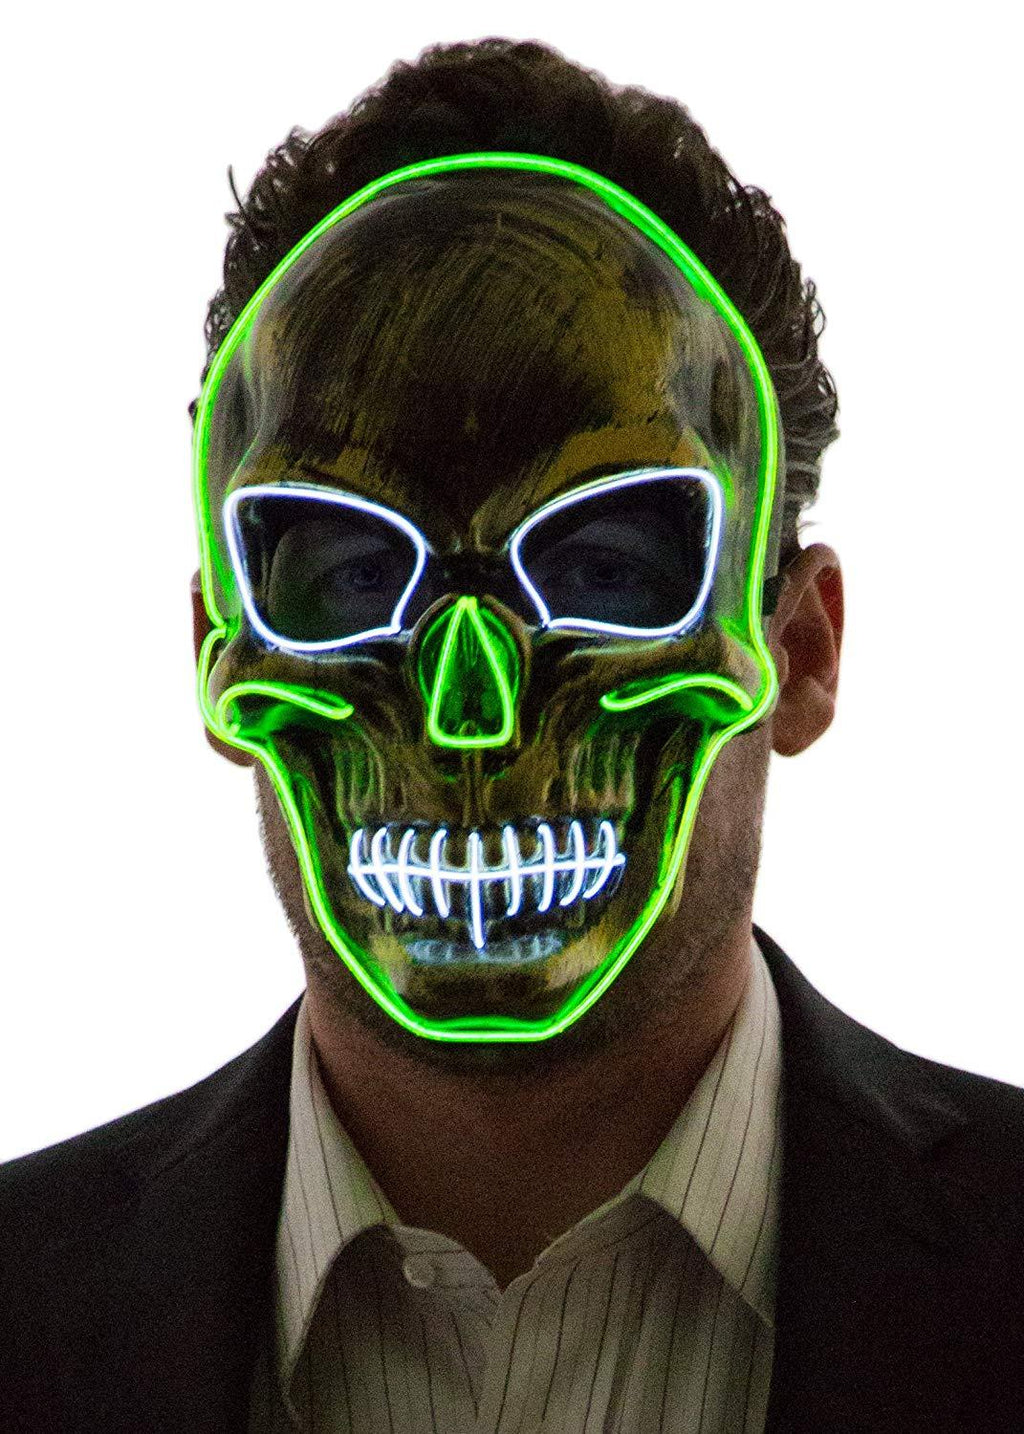 Factory Outlet 50% OFF Today-Neon Nightlife Men's Light up Scary Death Skull Mask